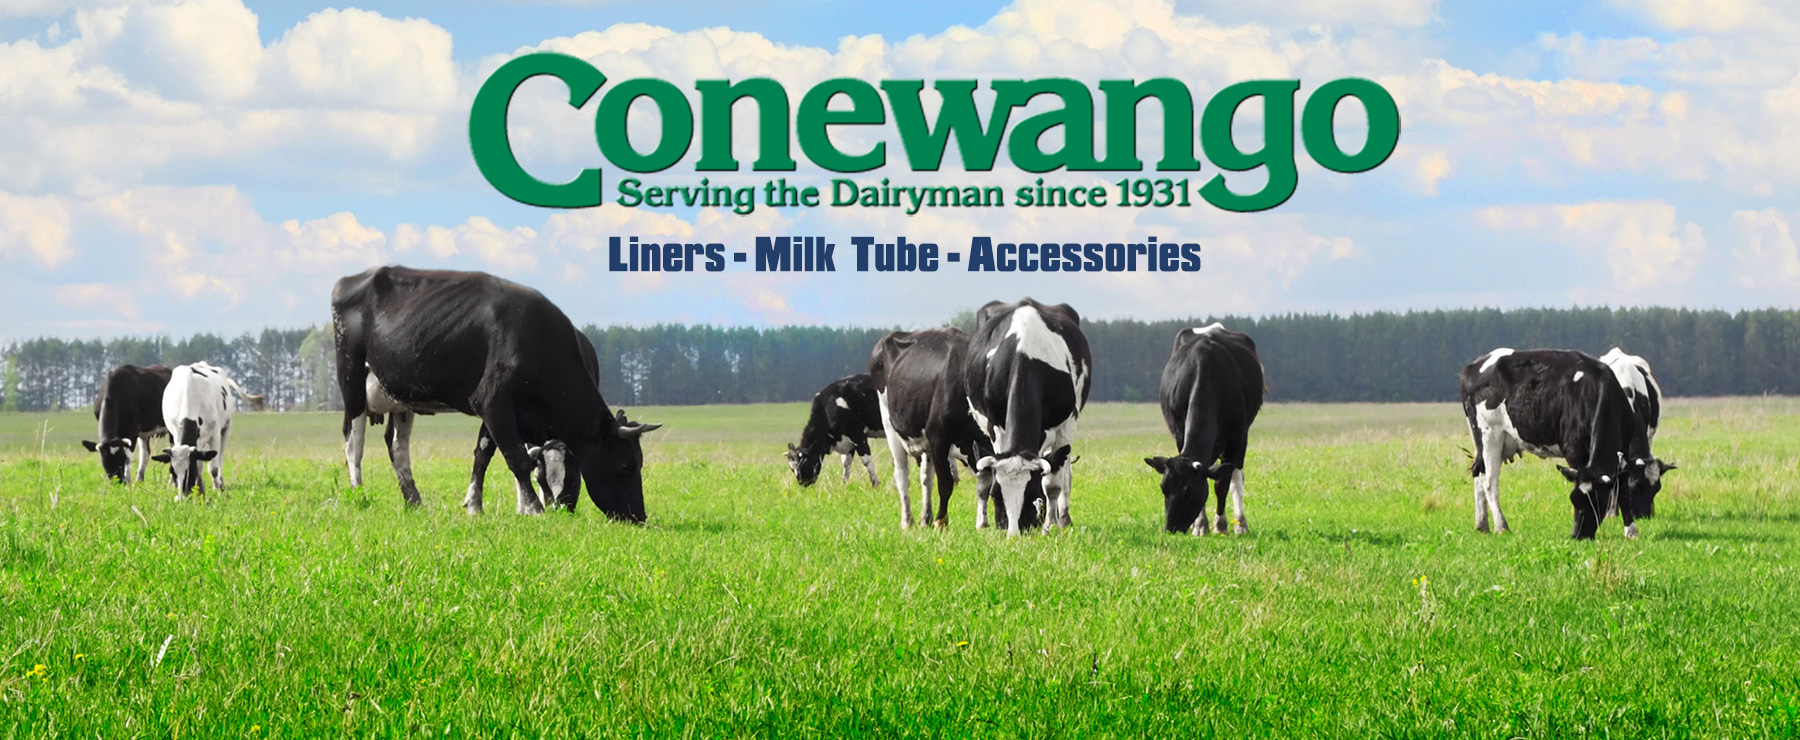 Conewango Milking Liners - Milk Tube - Accessories